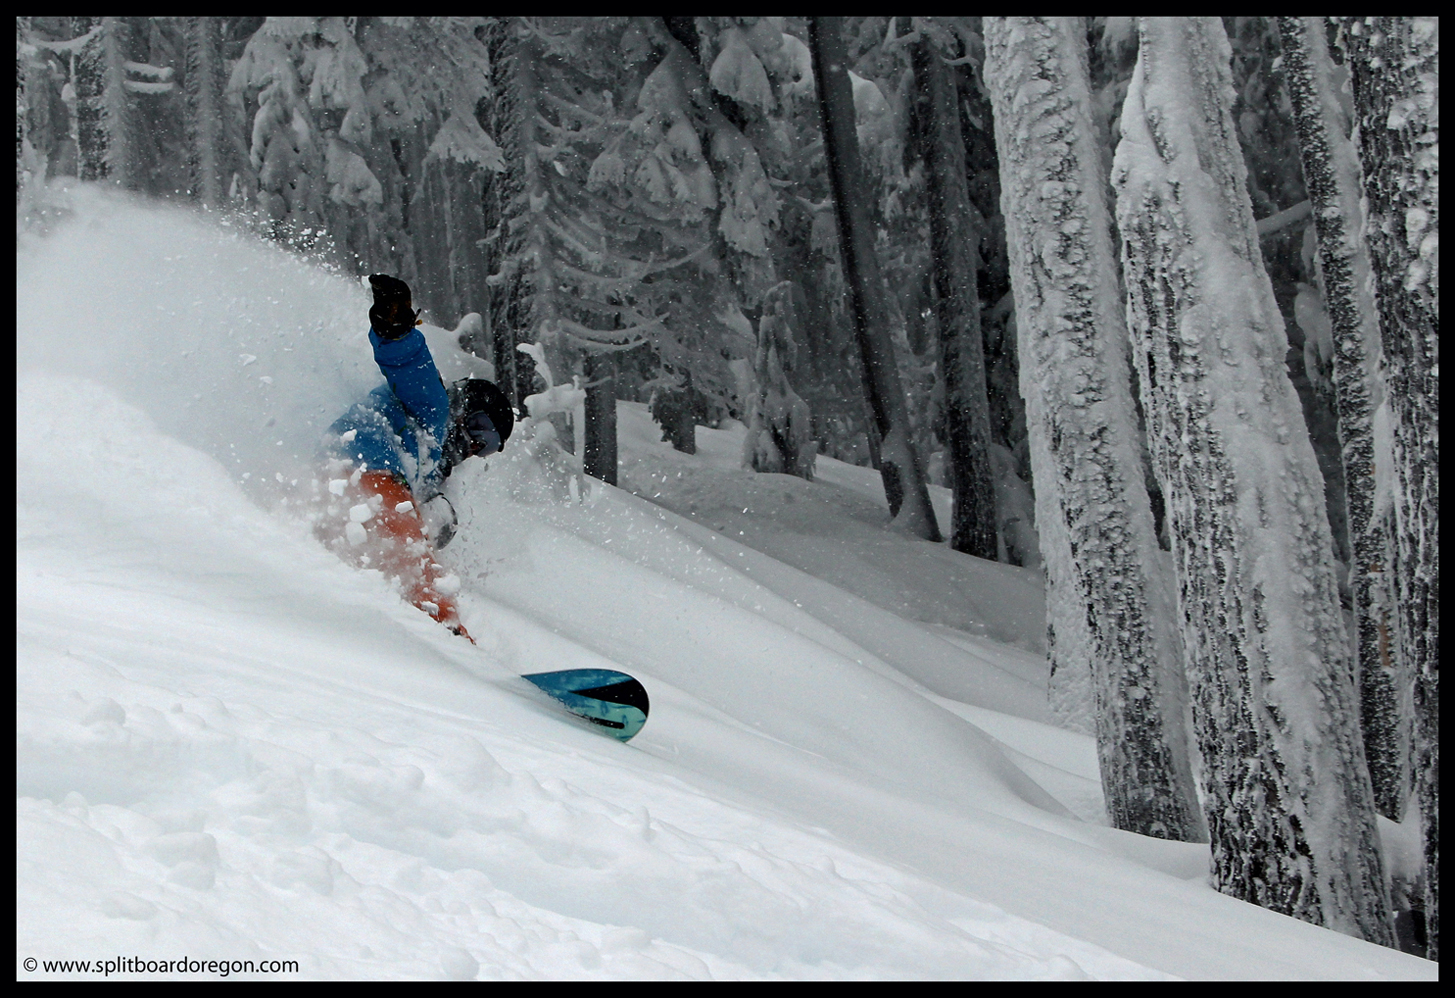 Pow surfing at the Pass